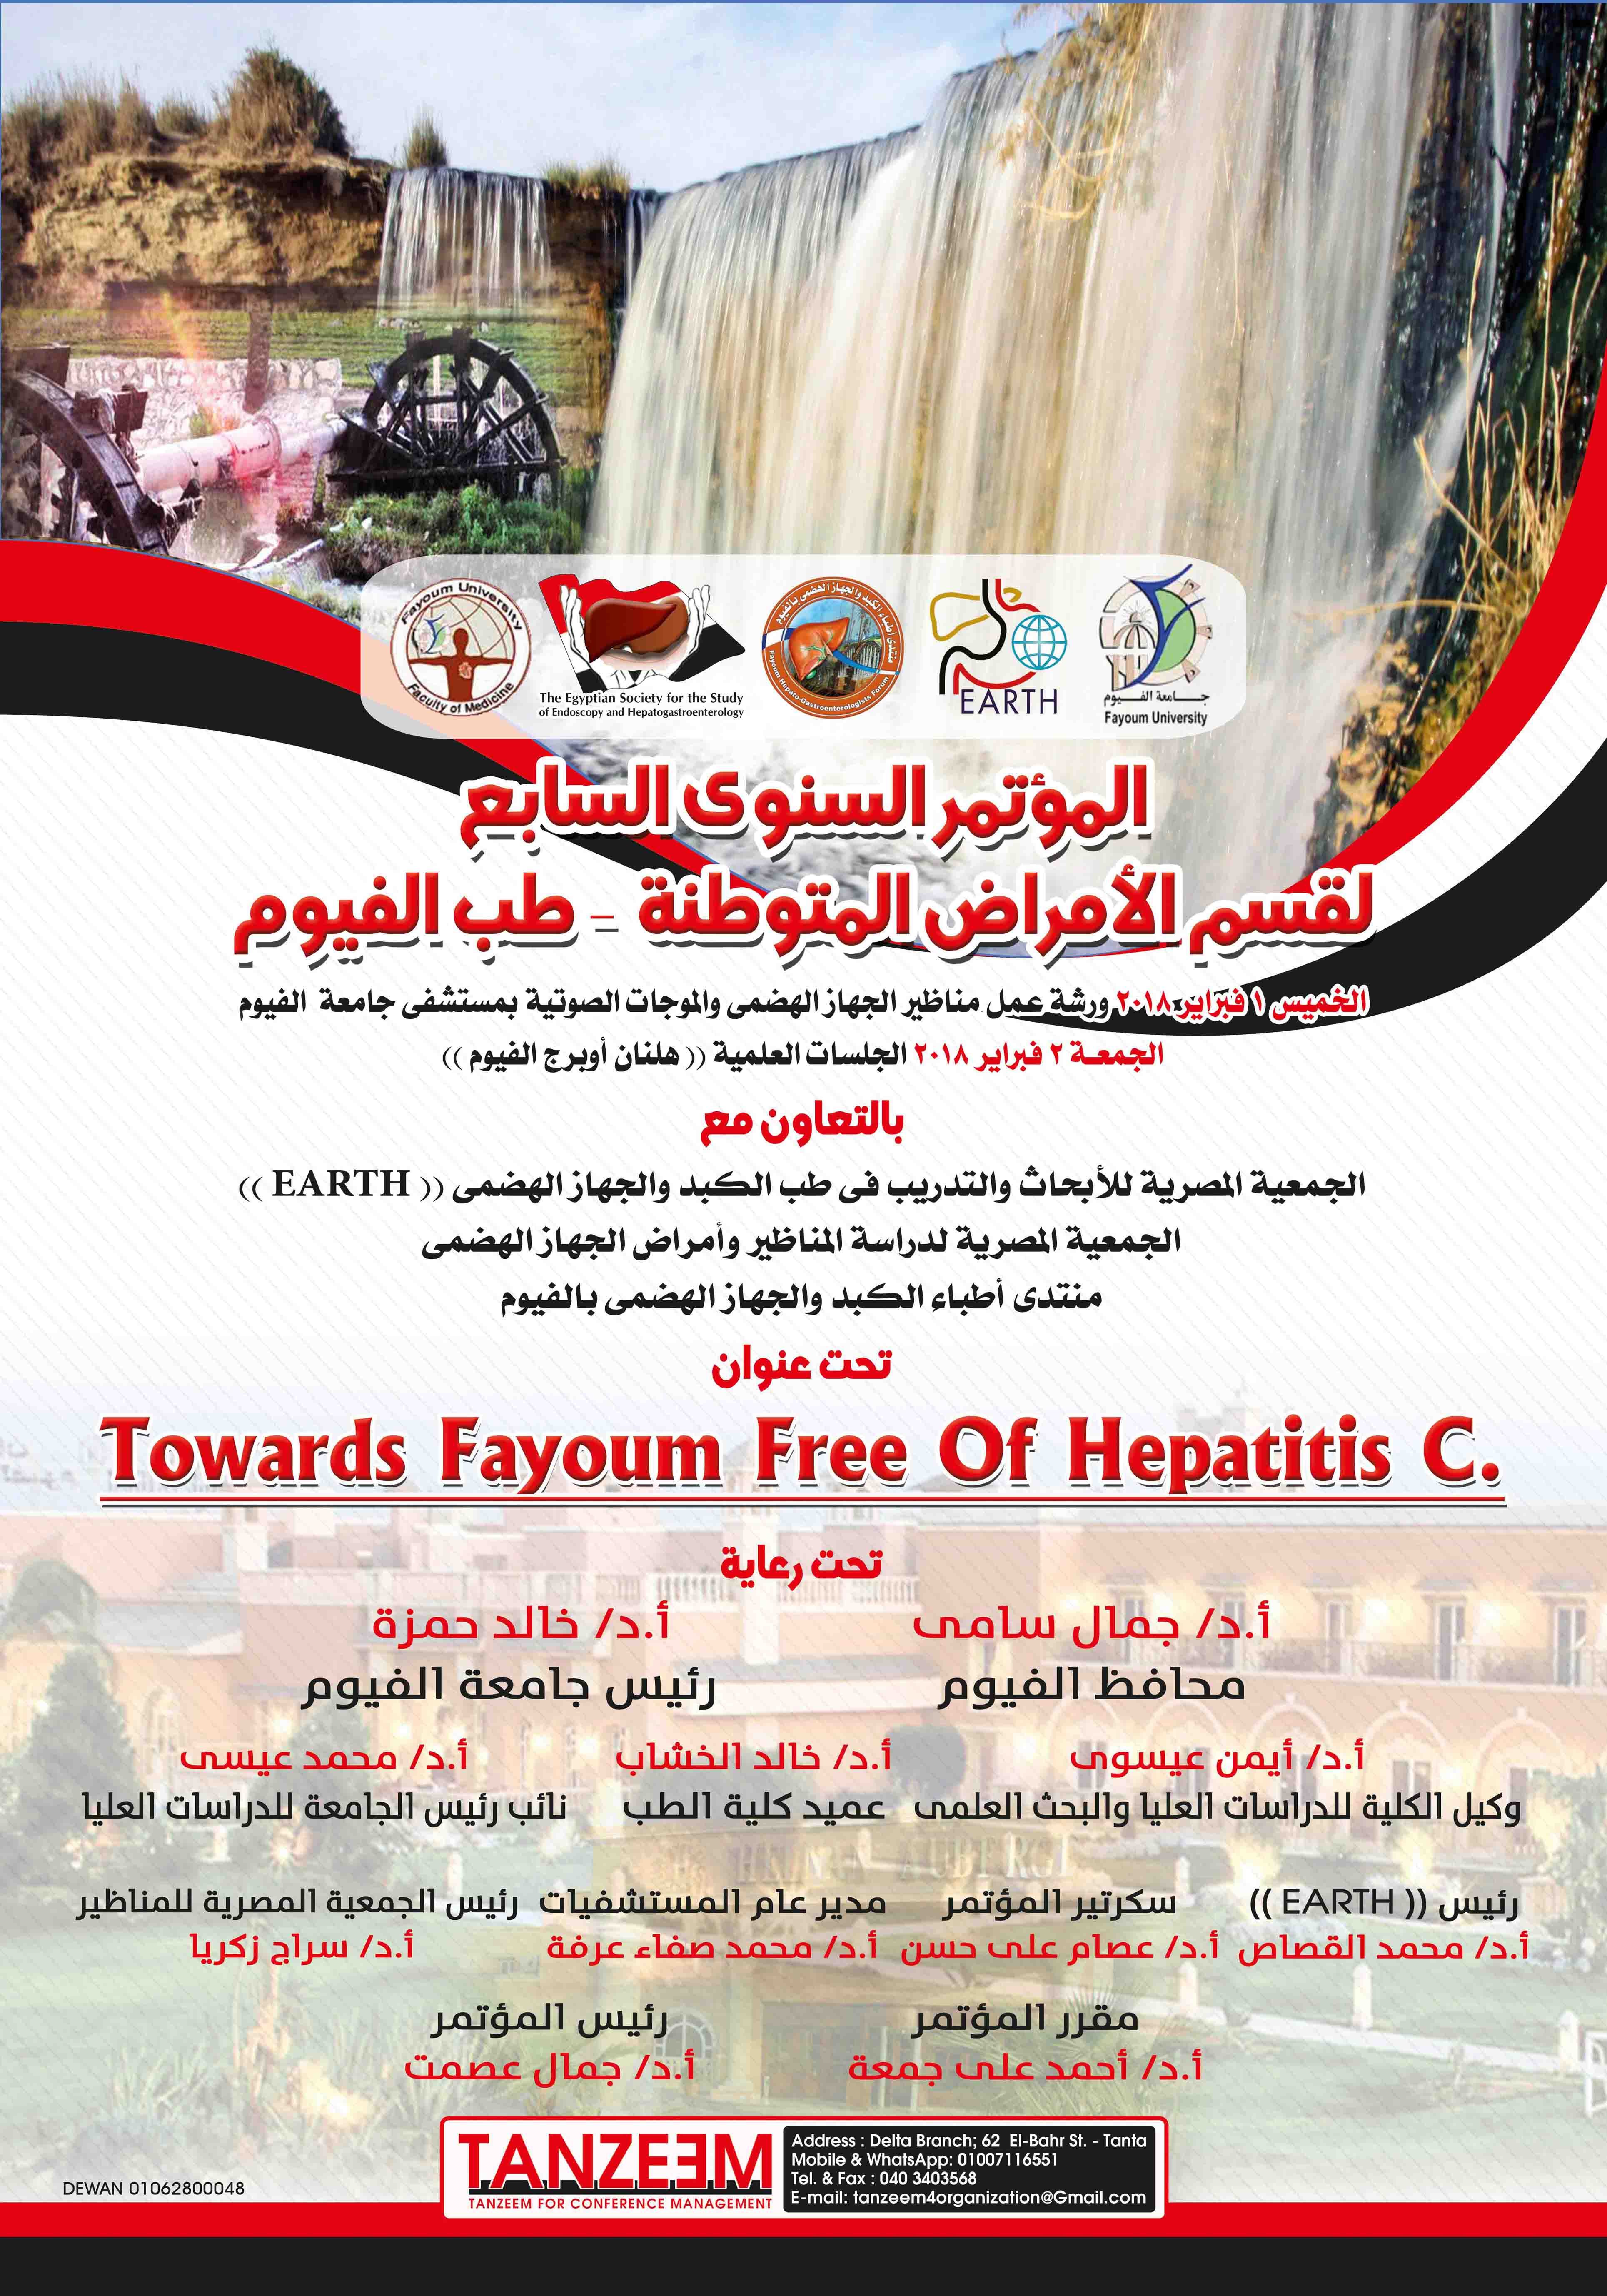 Towards Fayoum Free of Hepatitis C.